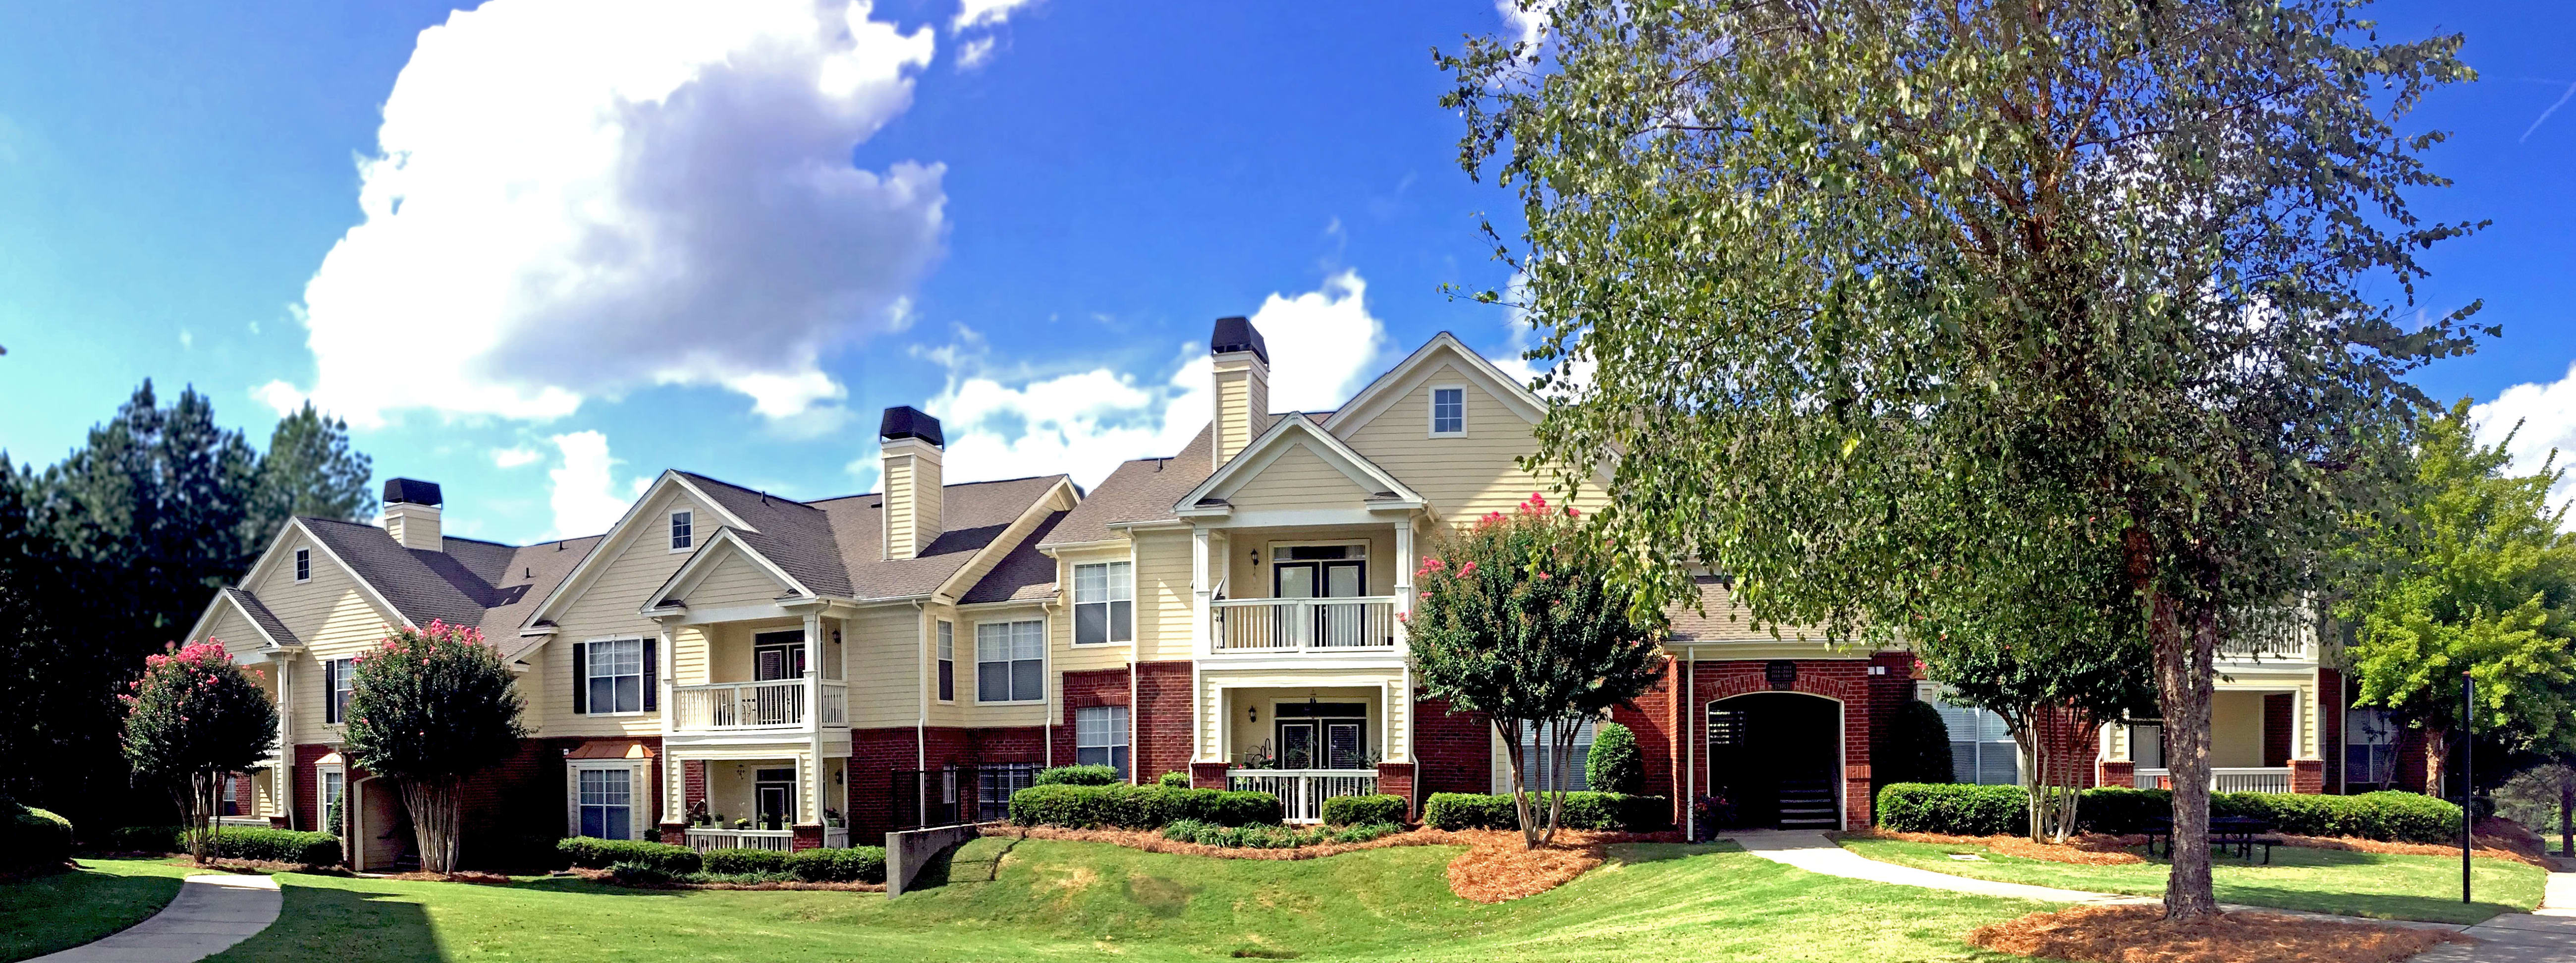 Information about the neighborhood near our apartments in Rock Hill